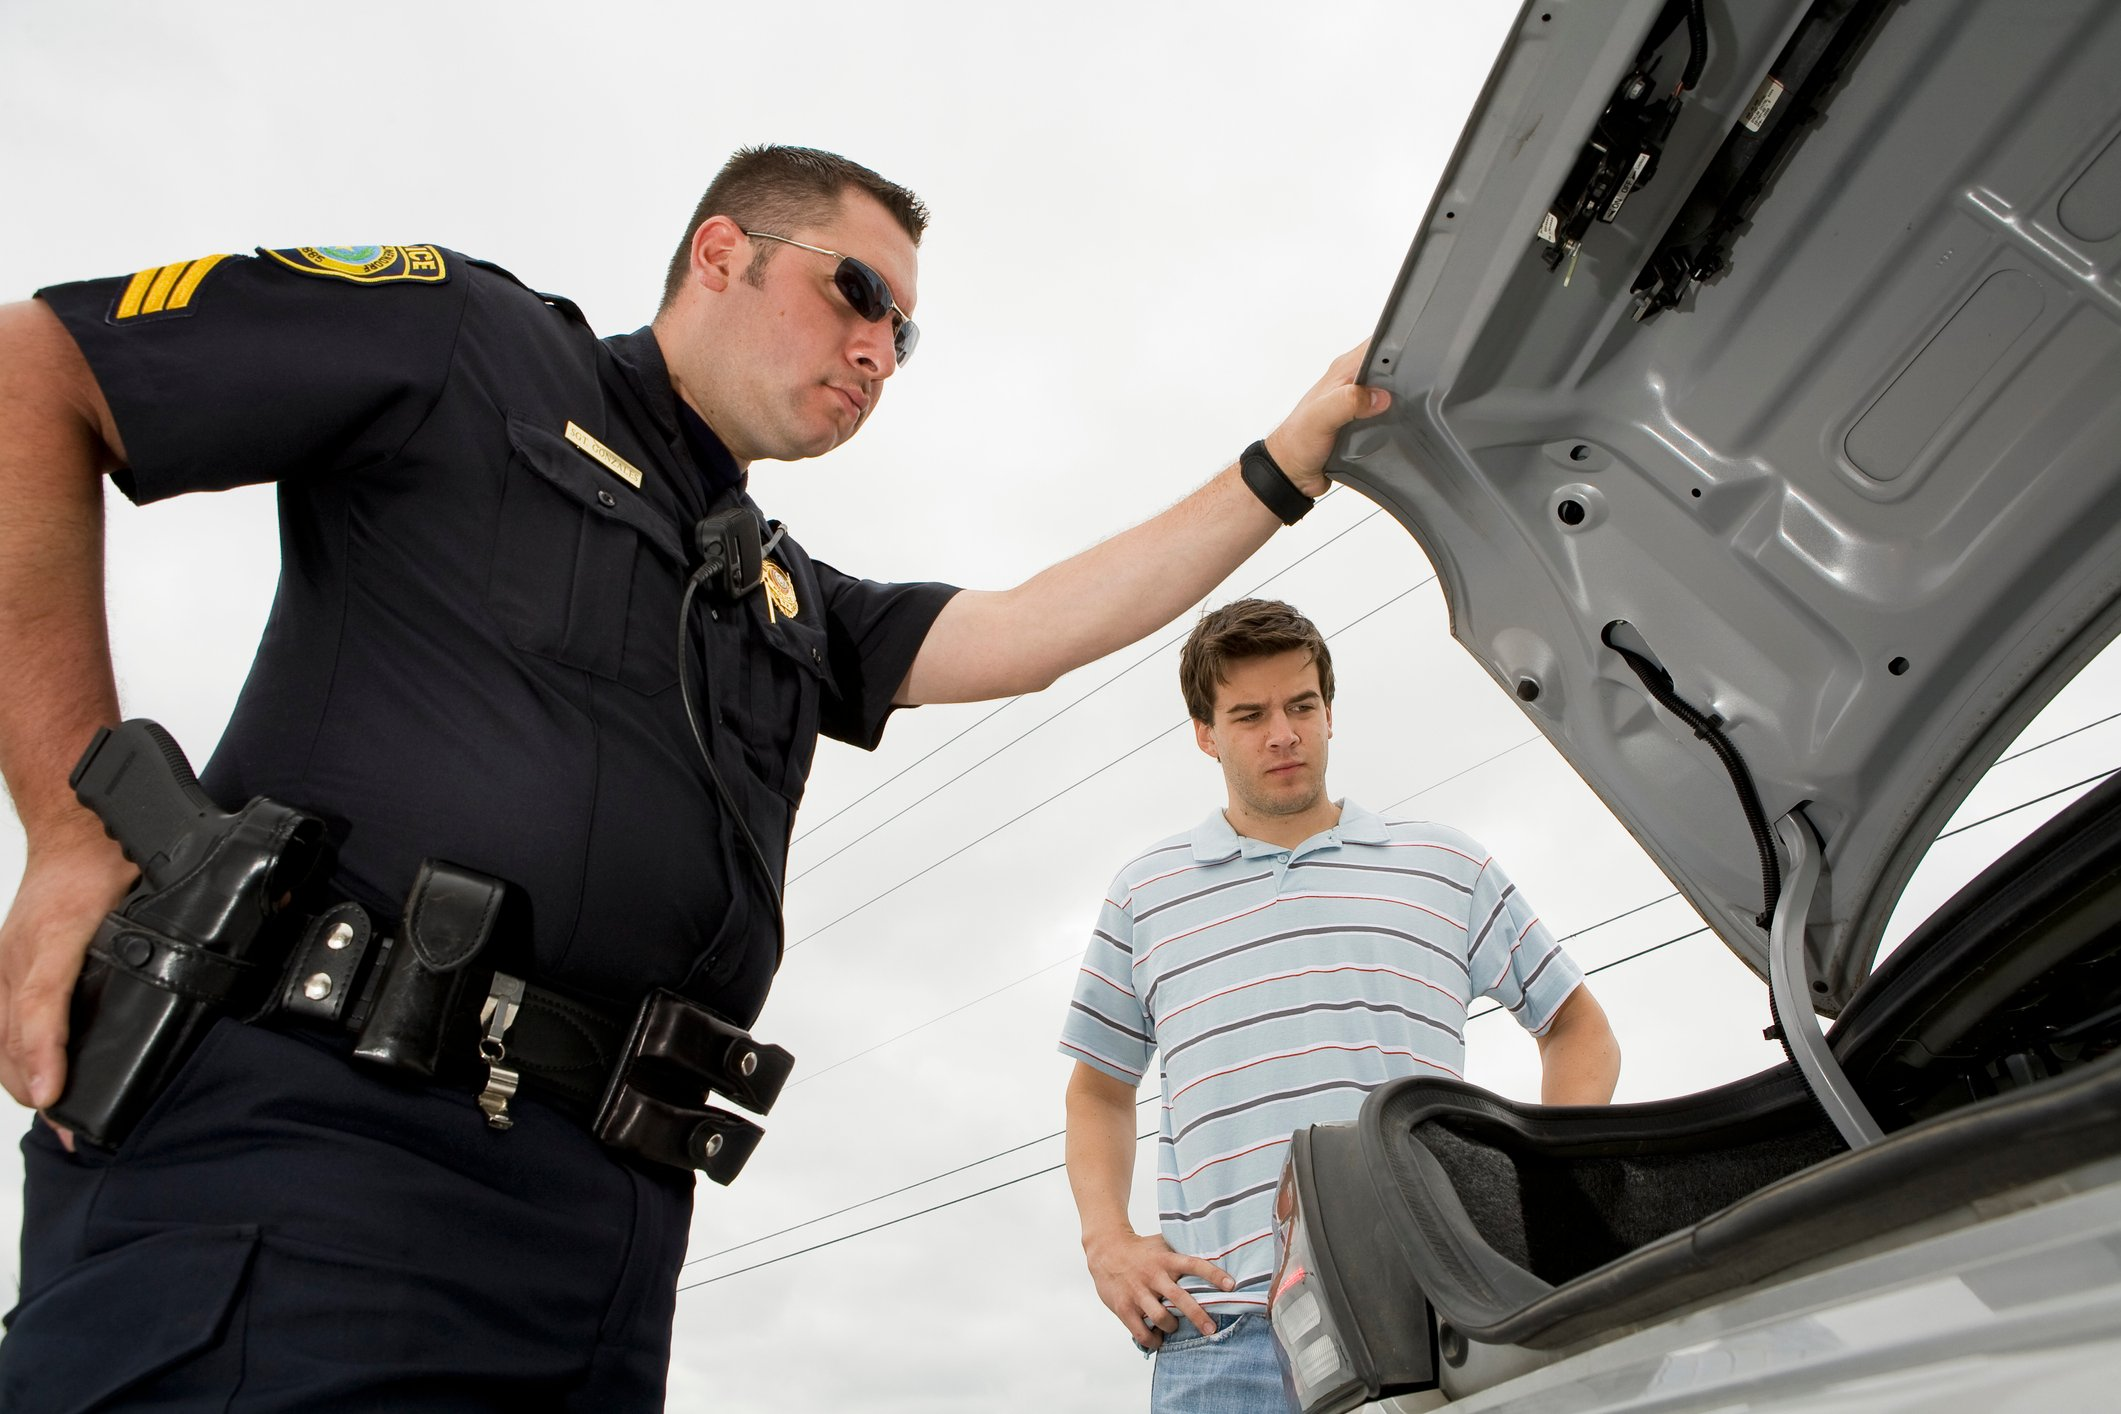 Can the Police Legitimately Search My Vehicle Without a Warrant? - FindLaw